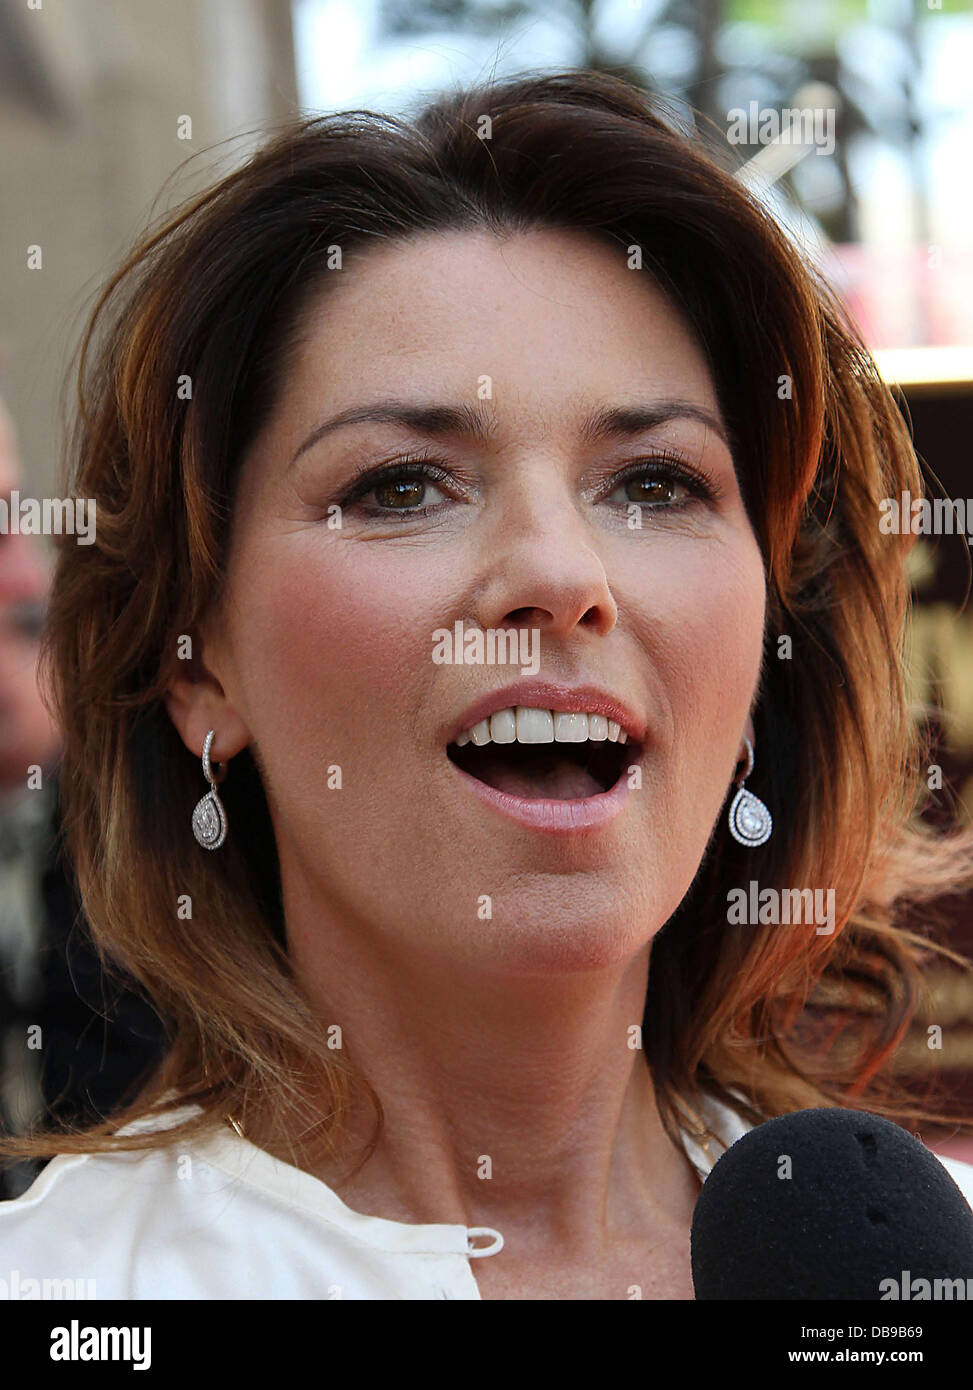 Shania Twain Teeth : shania, twain, teeth, Singer, Shania, Twain, Honored, 2442nd, Hollywood, Stock, Photo, Alamy